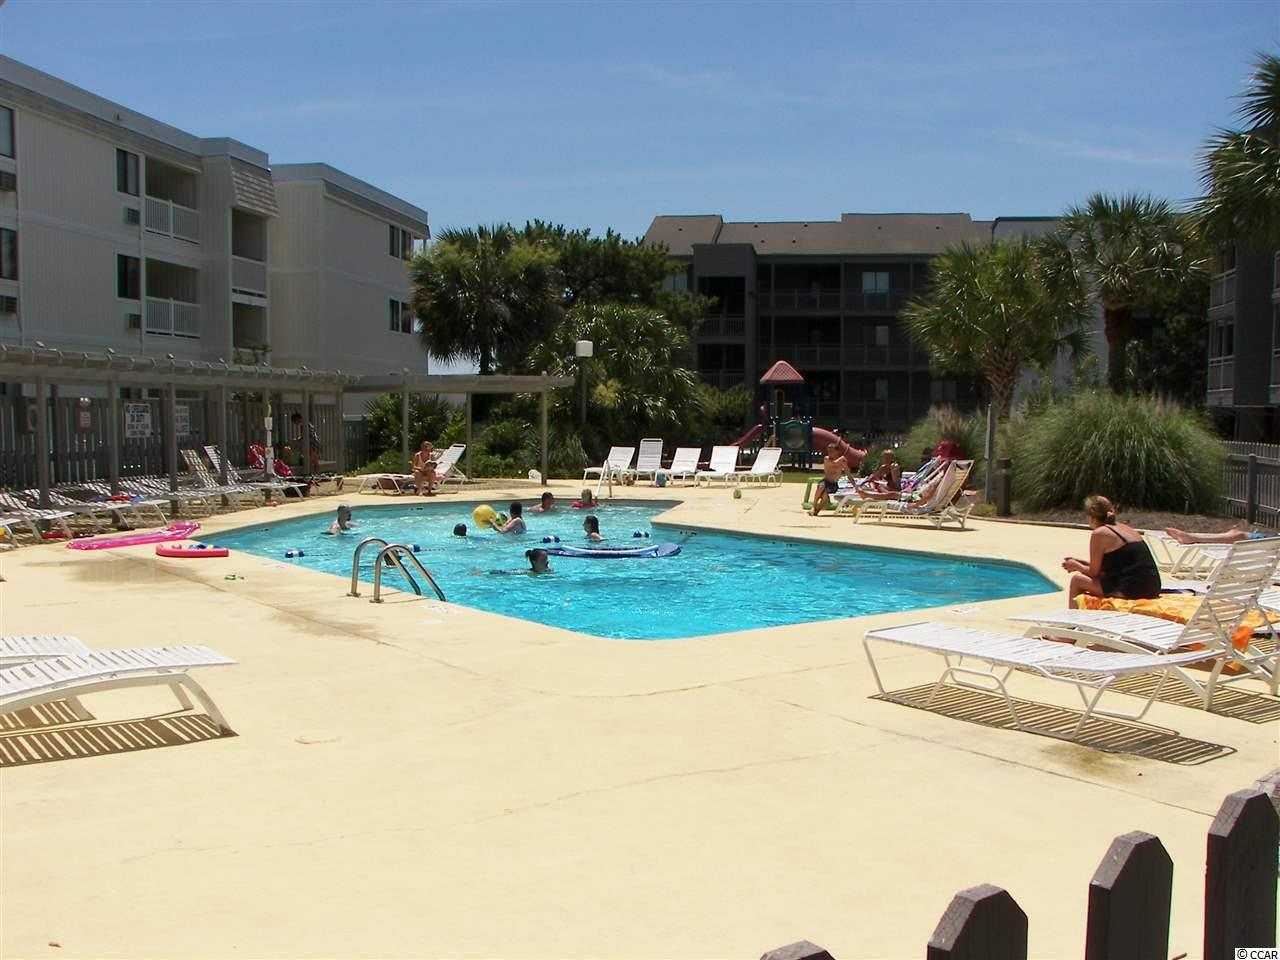 Another property at   Pelicans Landing offered by Myrtle Beach real estate agent